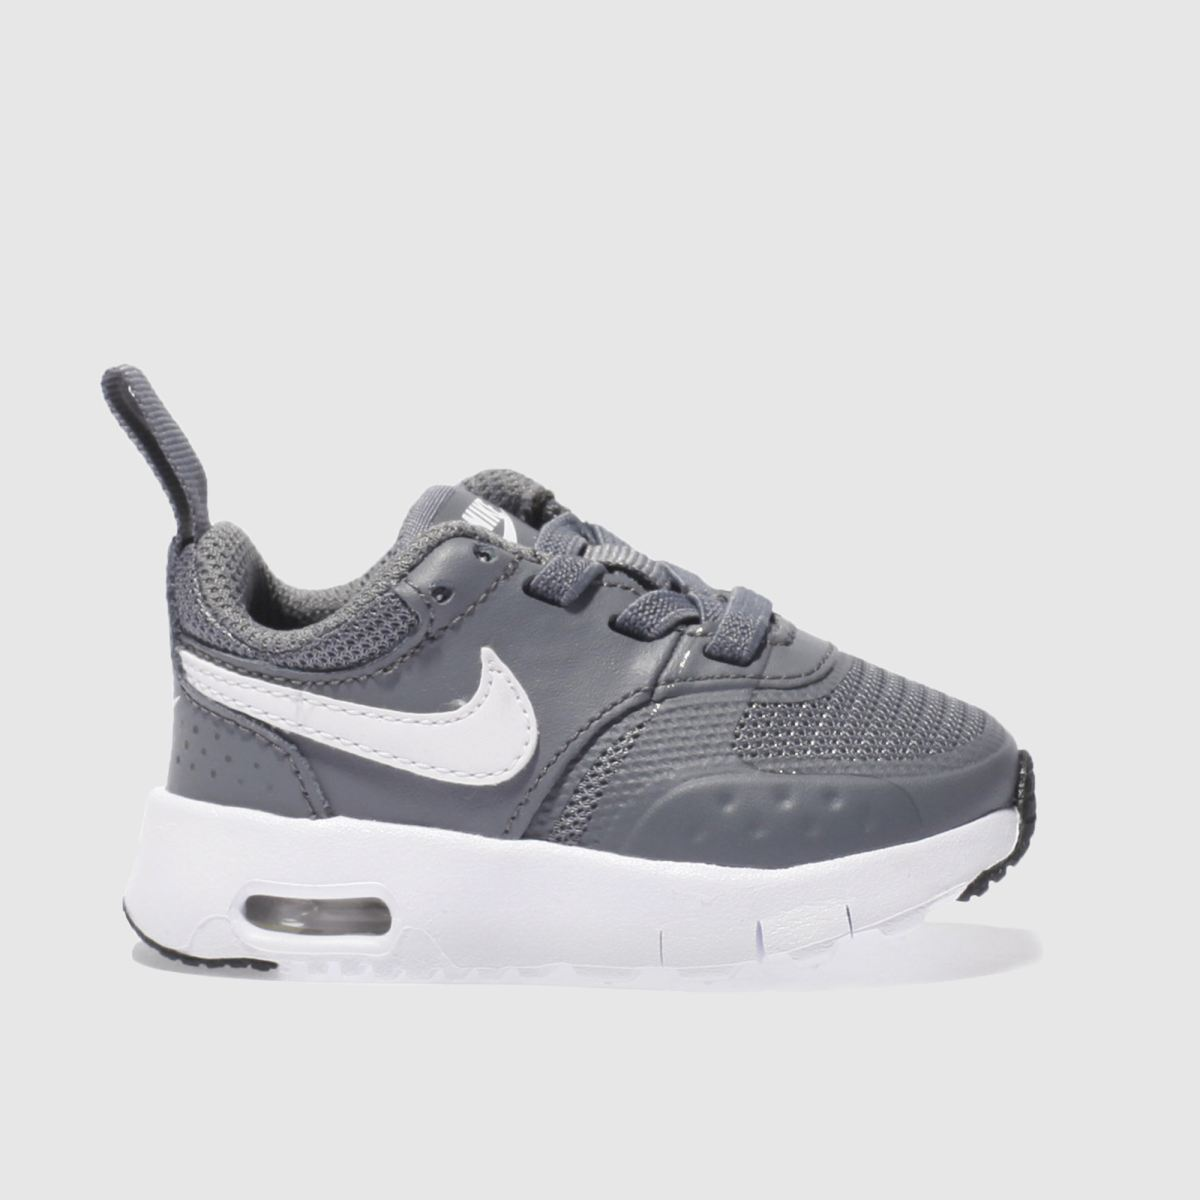 Nike Grey Air Max Vision Unisex Toddler Toddler